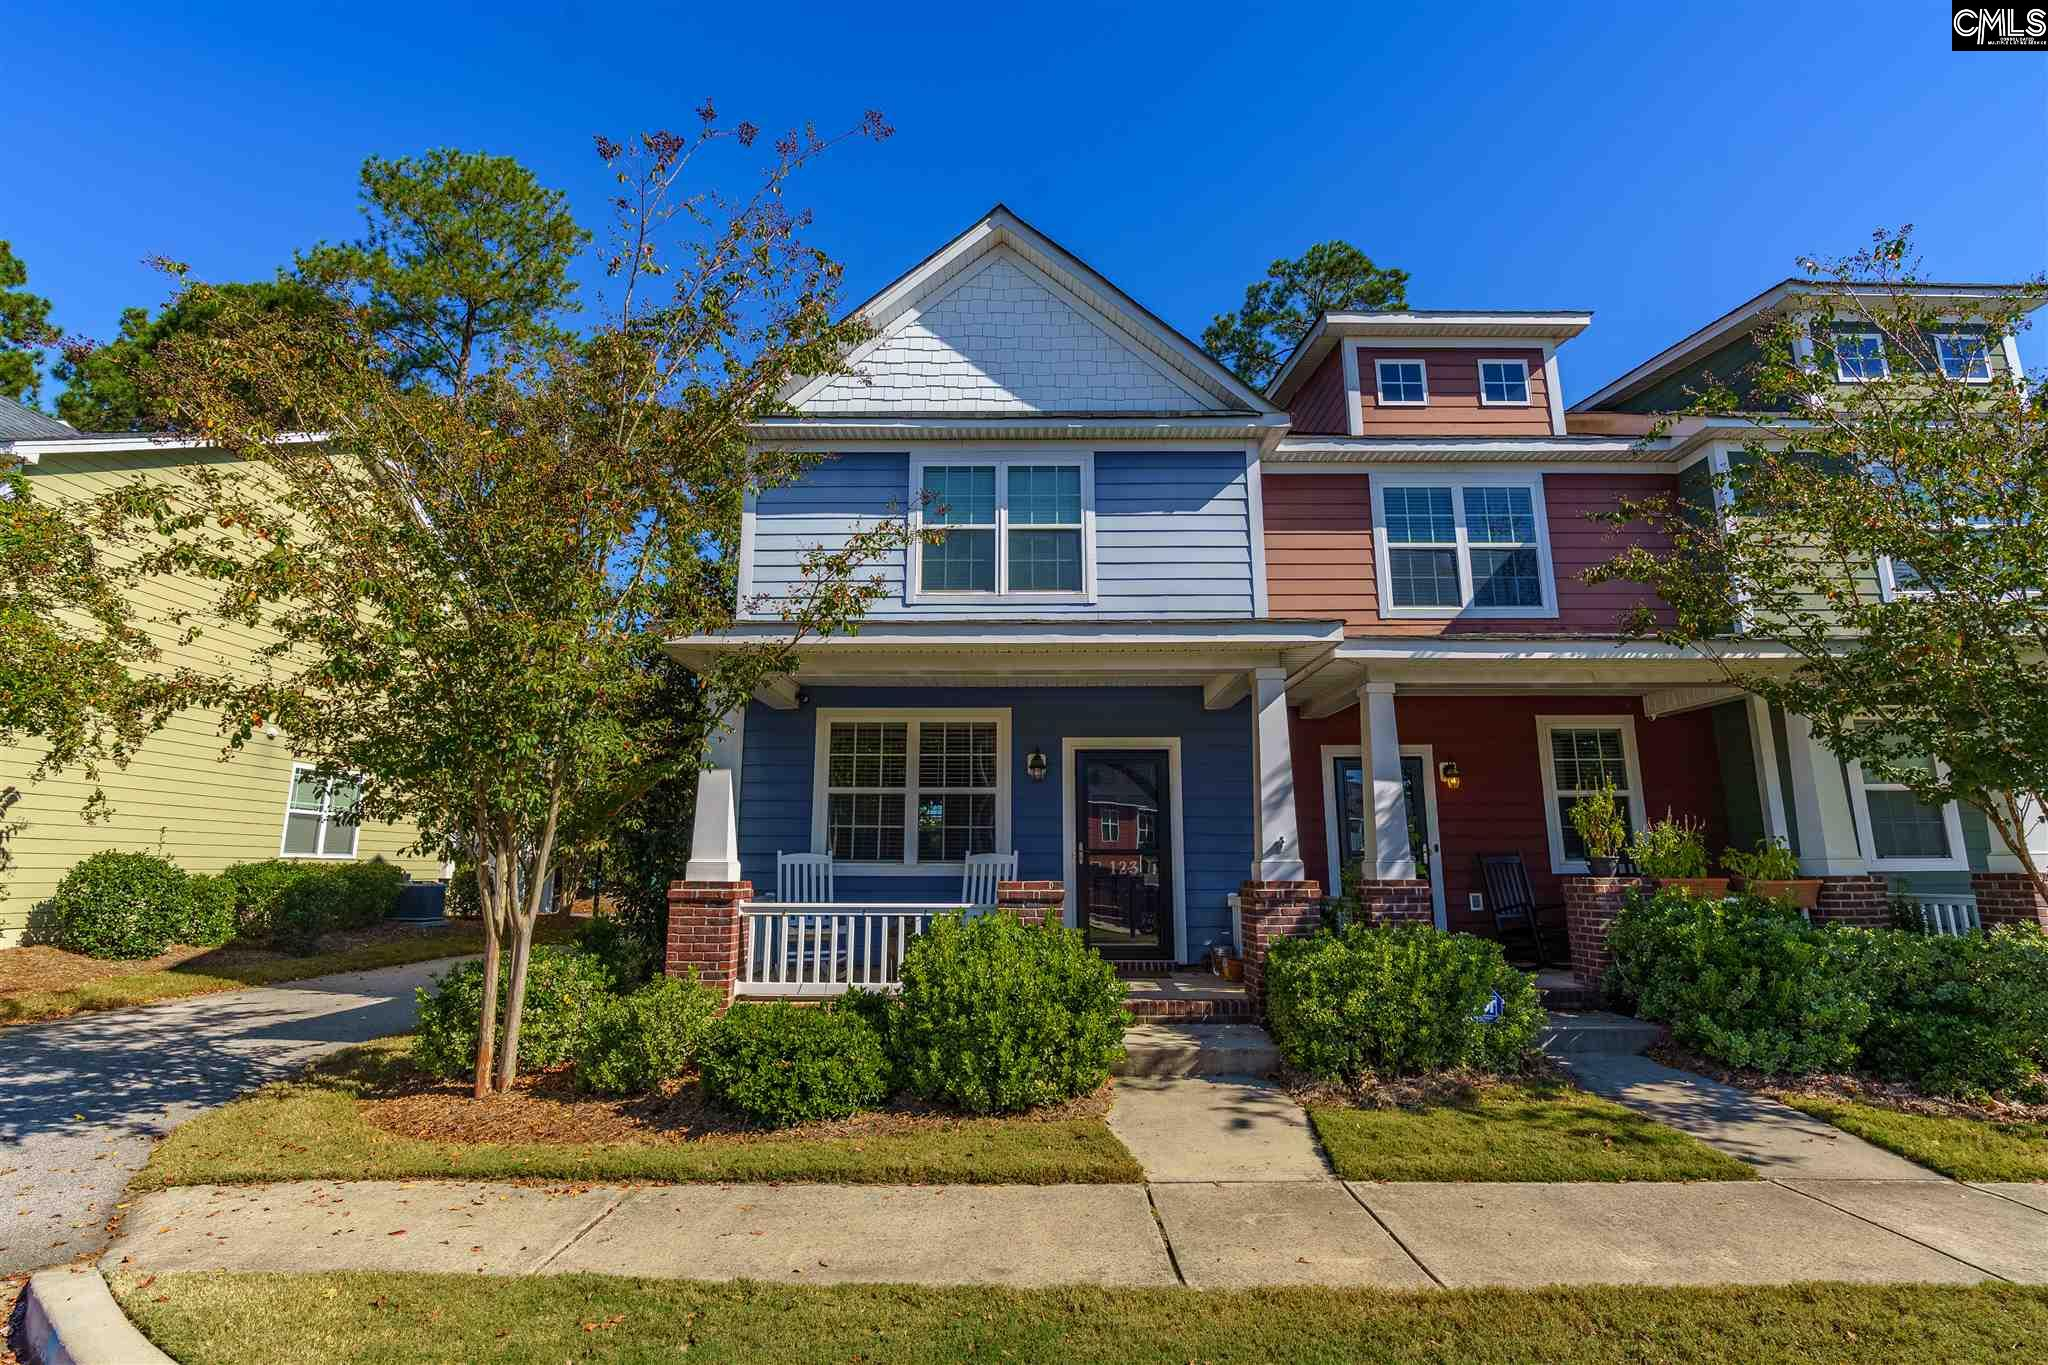 123 Top Forest Columbia, SC 29209